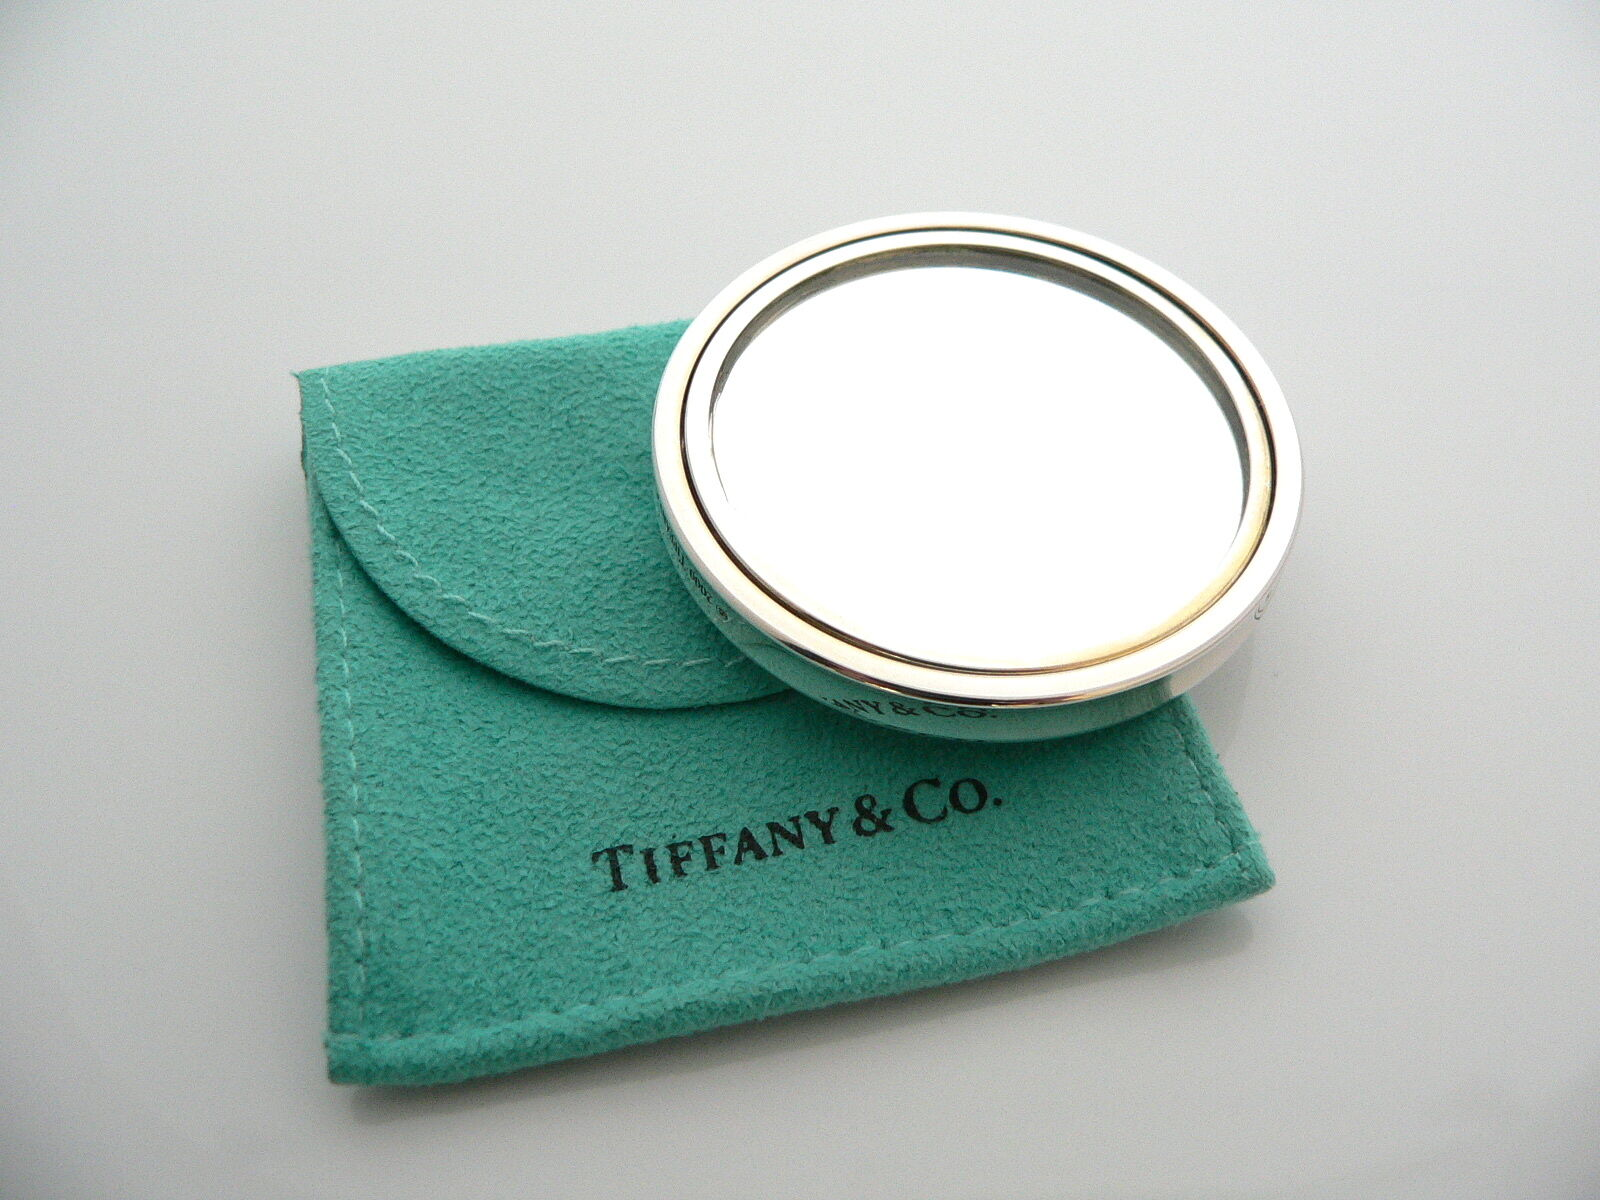 Tiffany & Co Silver 1837 Circle Round Purse Mirror Rare Classic Pouch Cool Gift